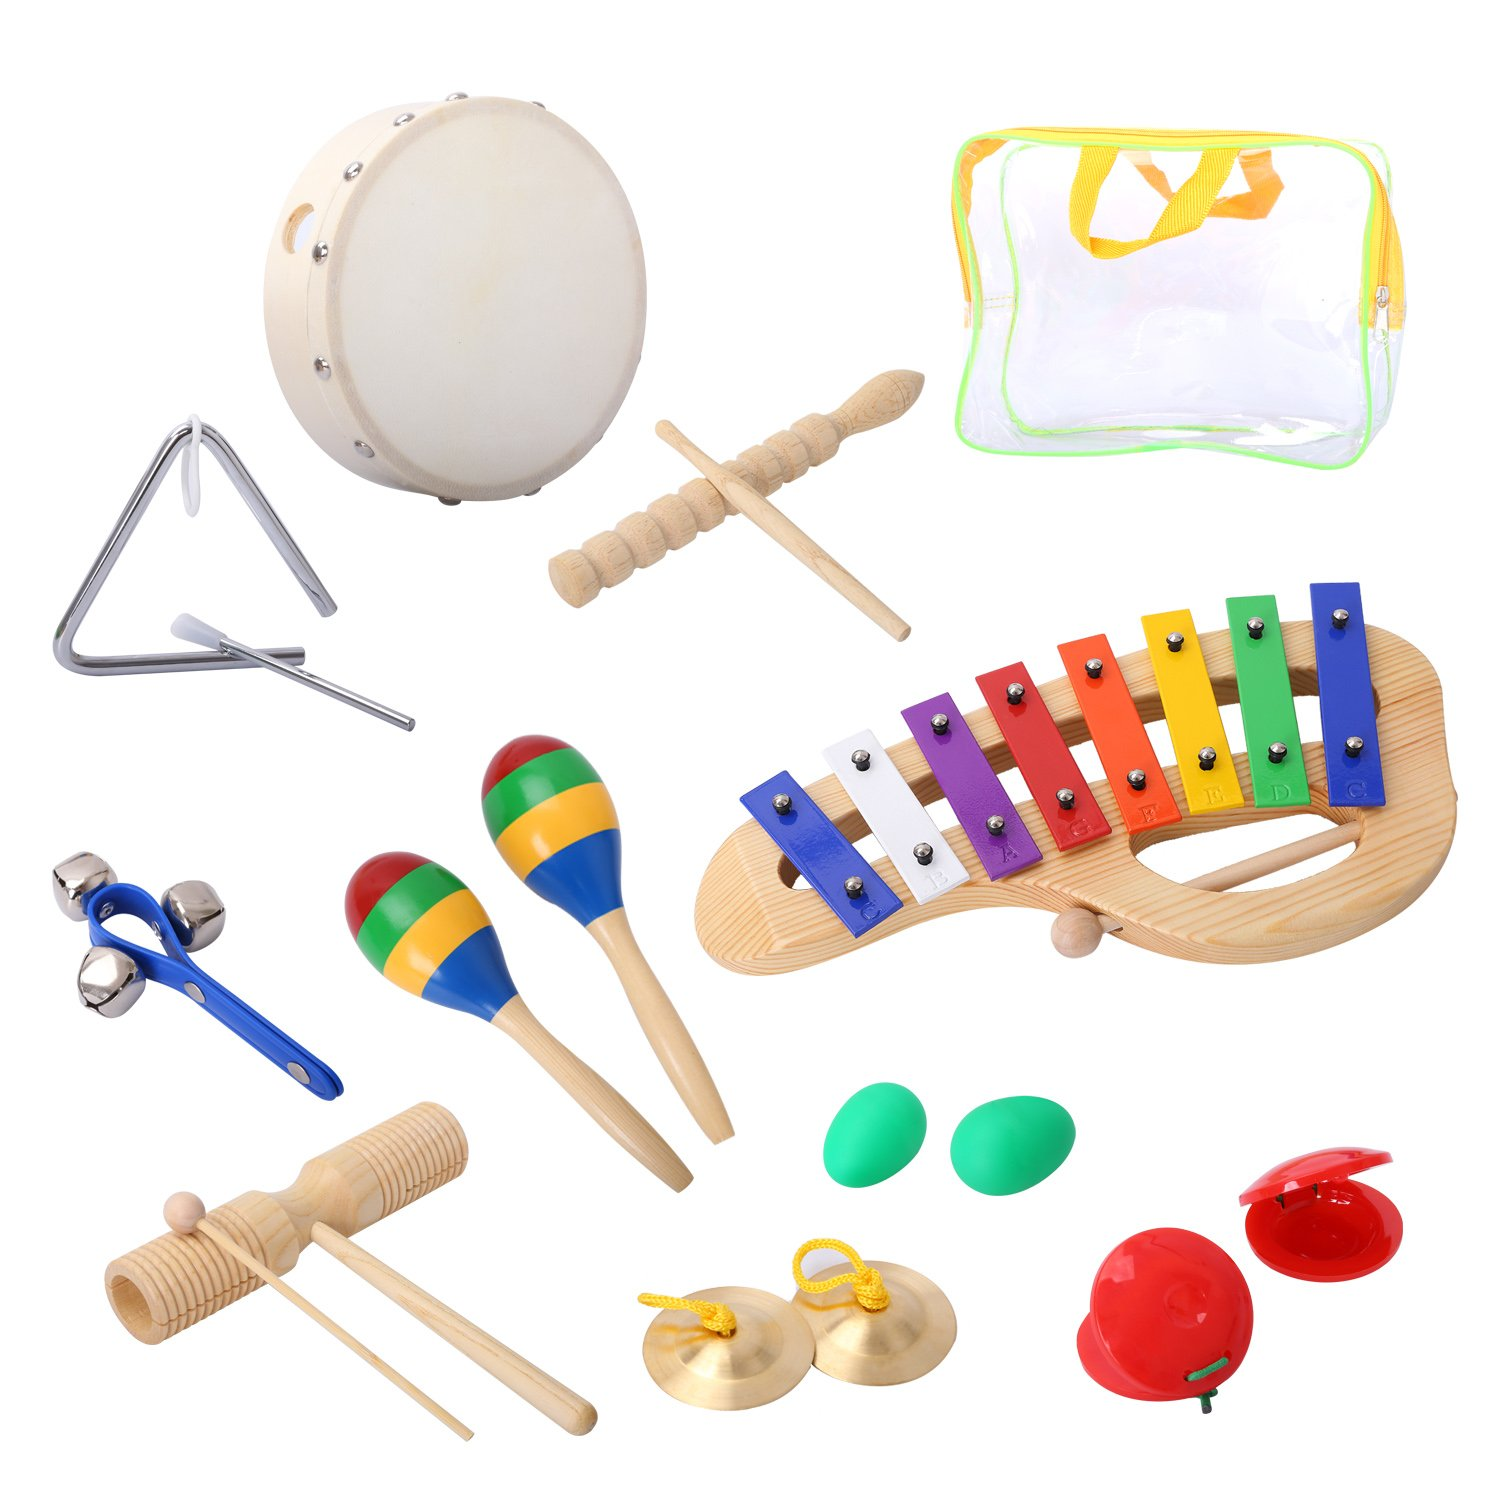 CAHAYA Percussion Set Musical Instruments and Enlighten Toys Kit Tambourine Bells Maracas Glockenspiel Castanets with Small Bag for Baby 10PCS